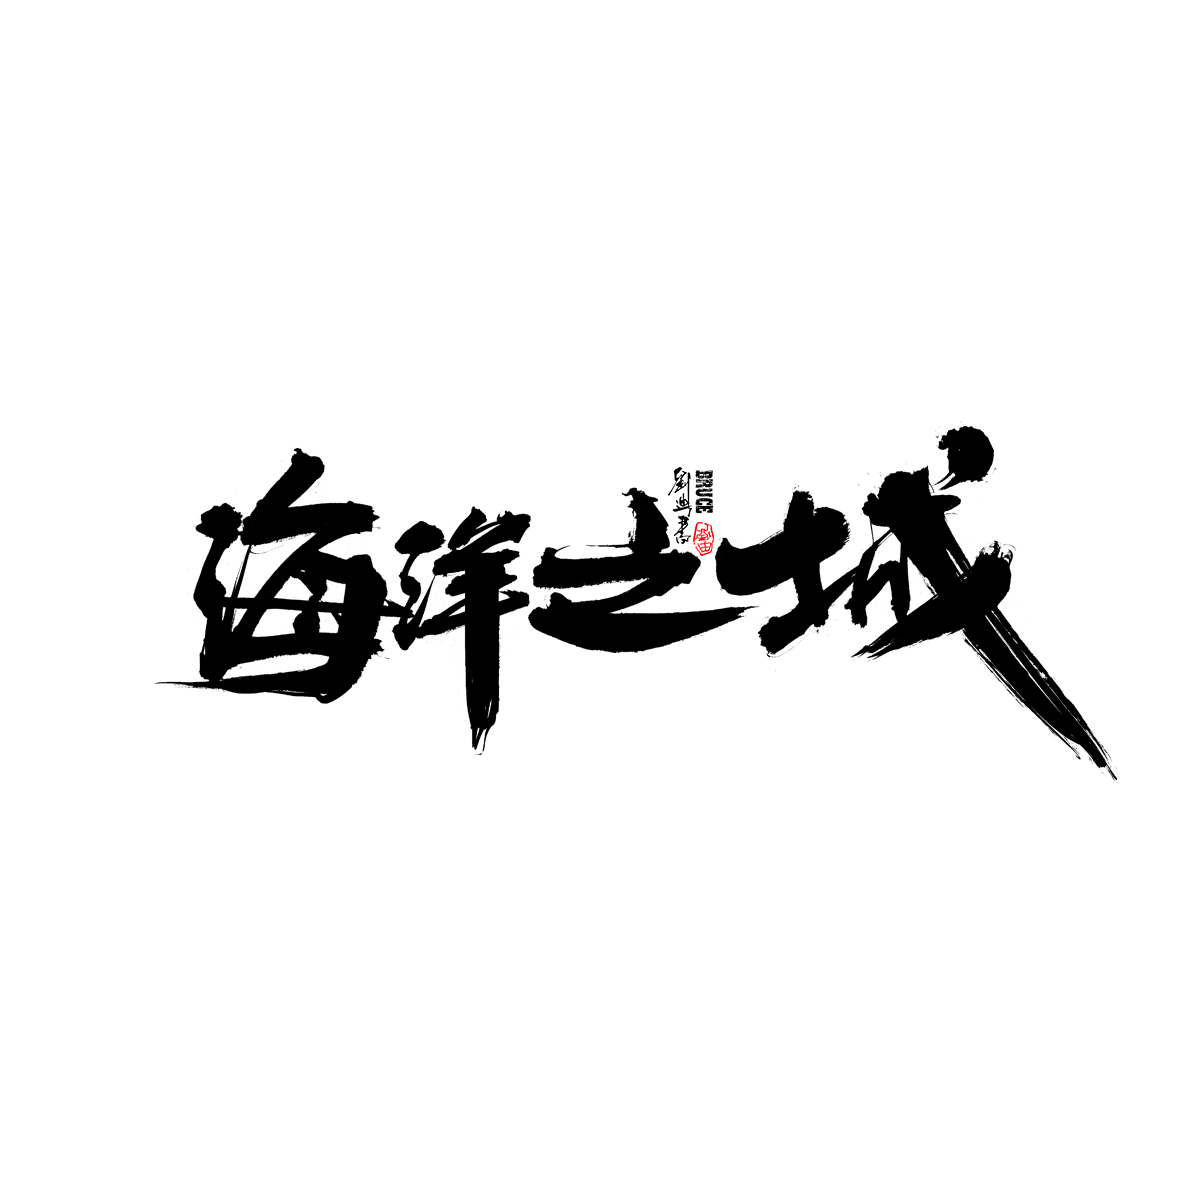 18P Collection of the latest Chinese font design schemes in 2021 #.310